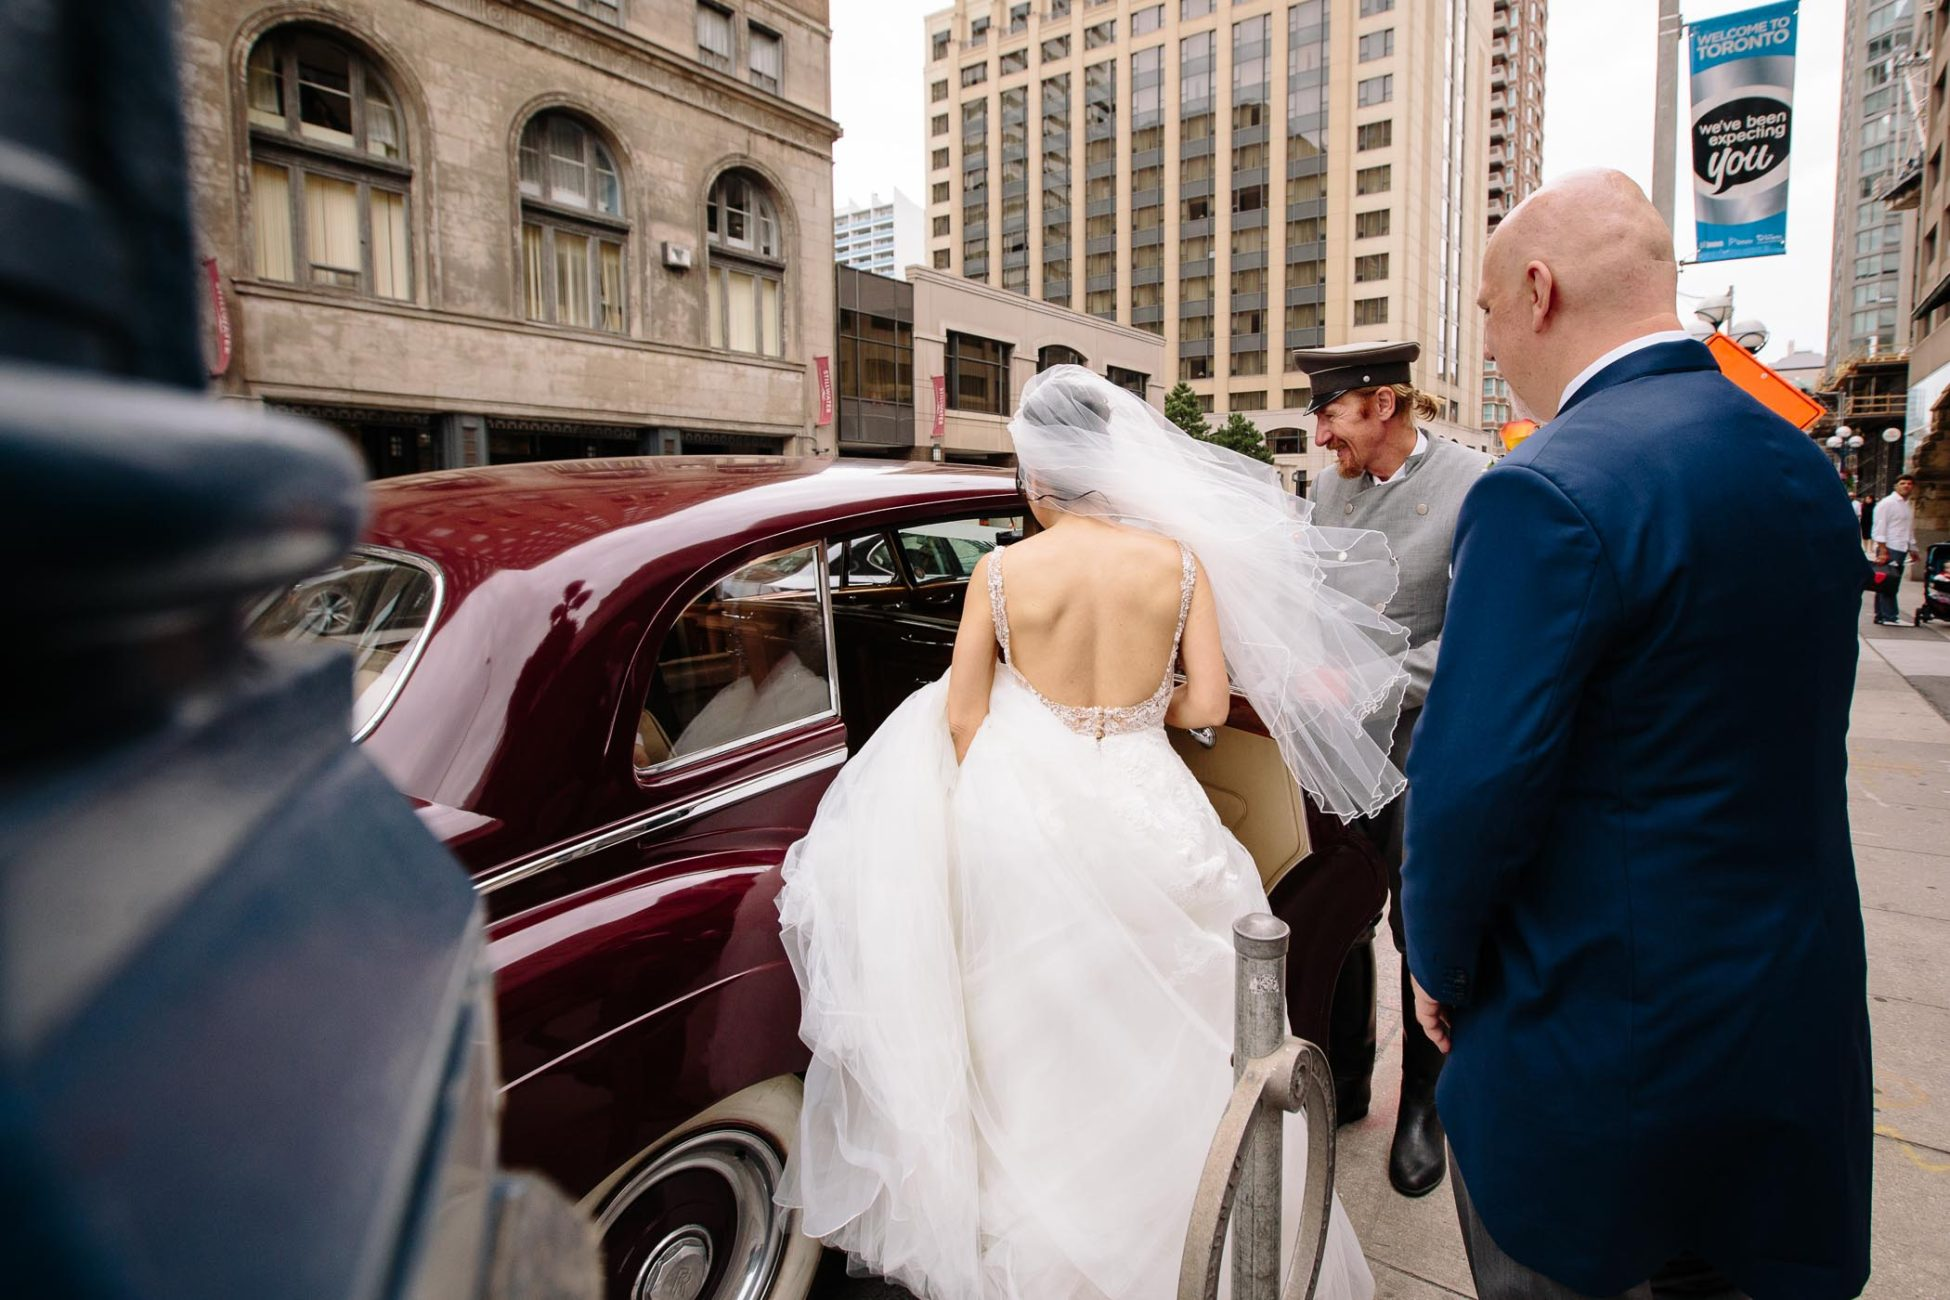 The bride entering a red Rolls Royce limo after wedding ceremony at Church of the Redeemer in Toronto.